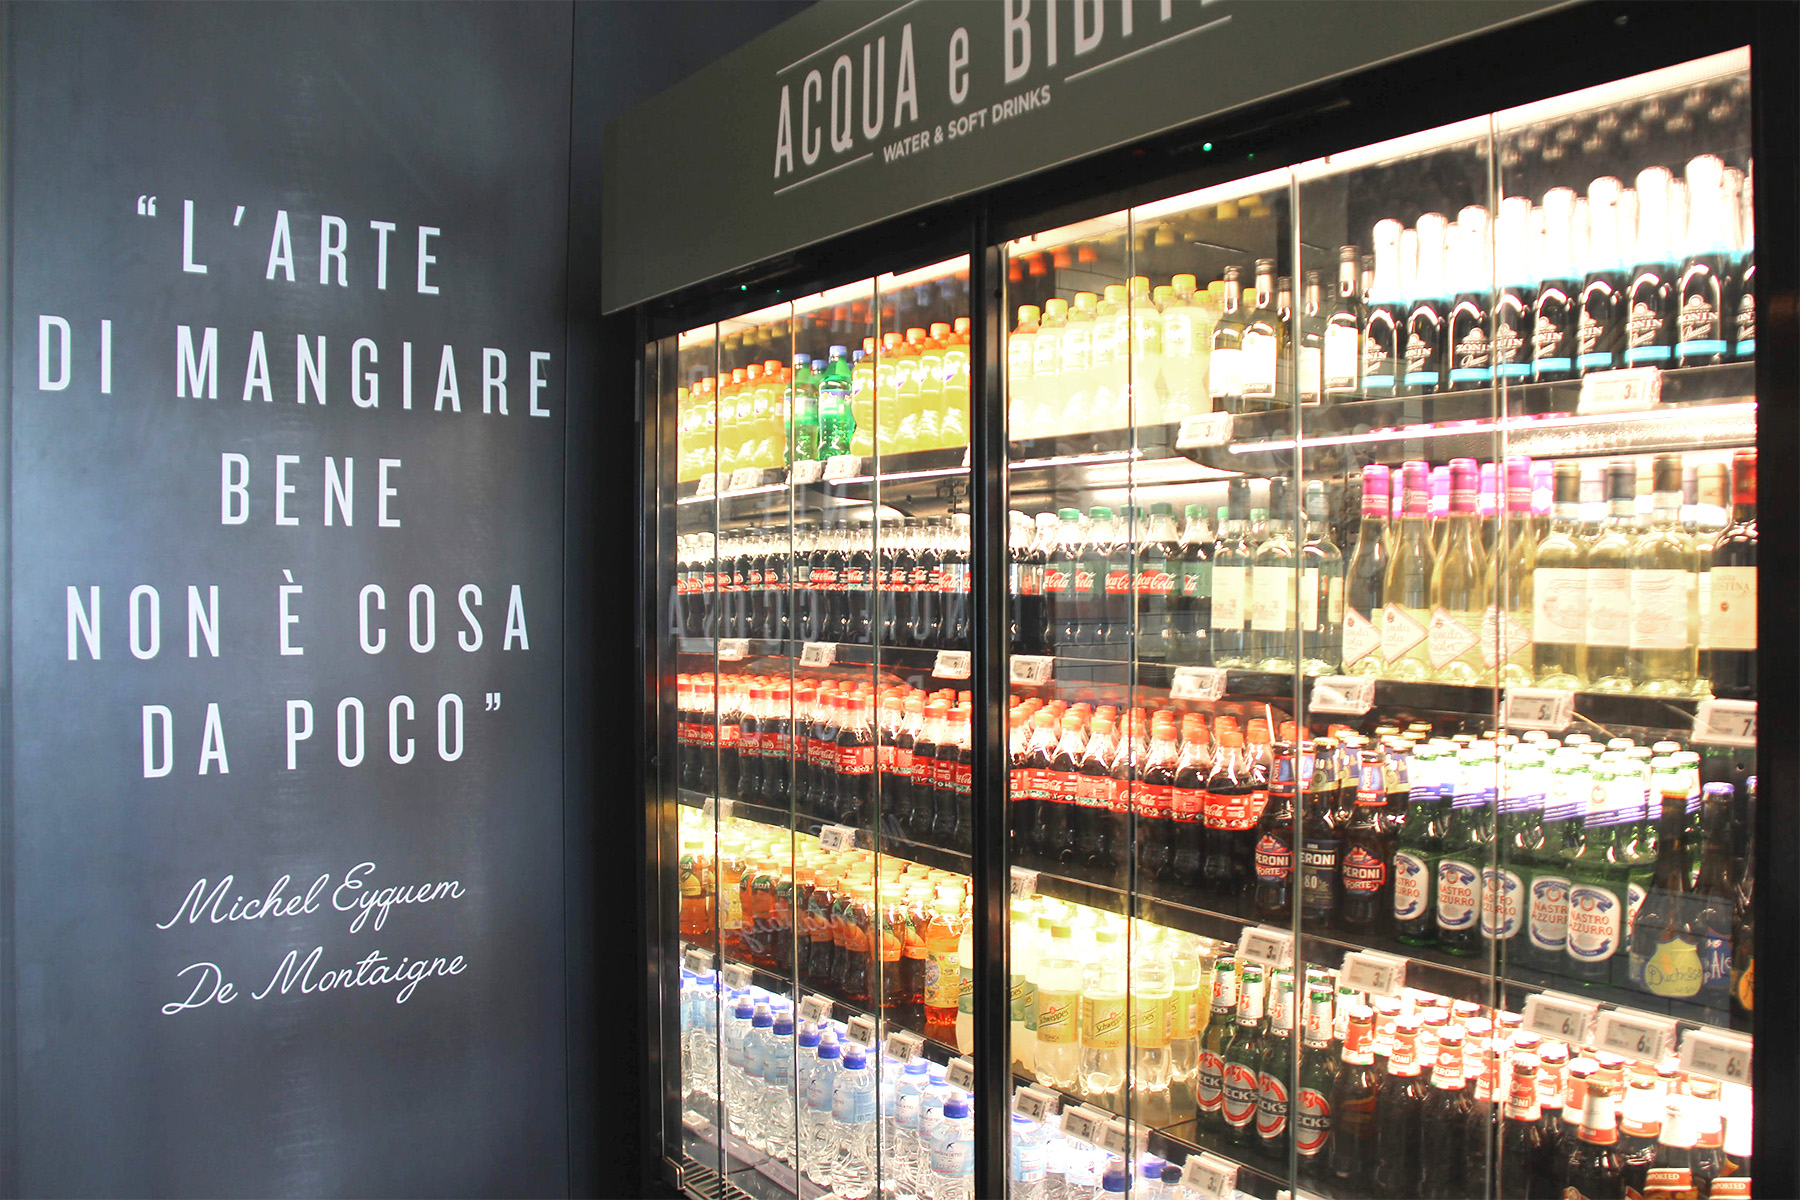 Nicolis Project | in-store digital communication etichette-elettroniche-banco-frigo Gruppo Cremonini adopts Electronic Shelf Labels for its Chef Express restaurants at RHO (Milan) and Villarboit (Vercelli)